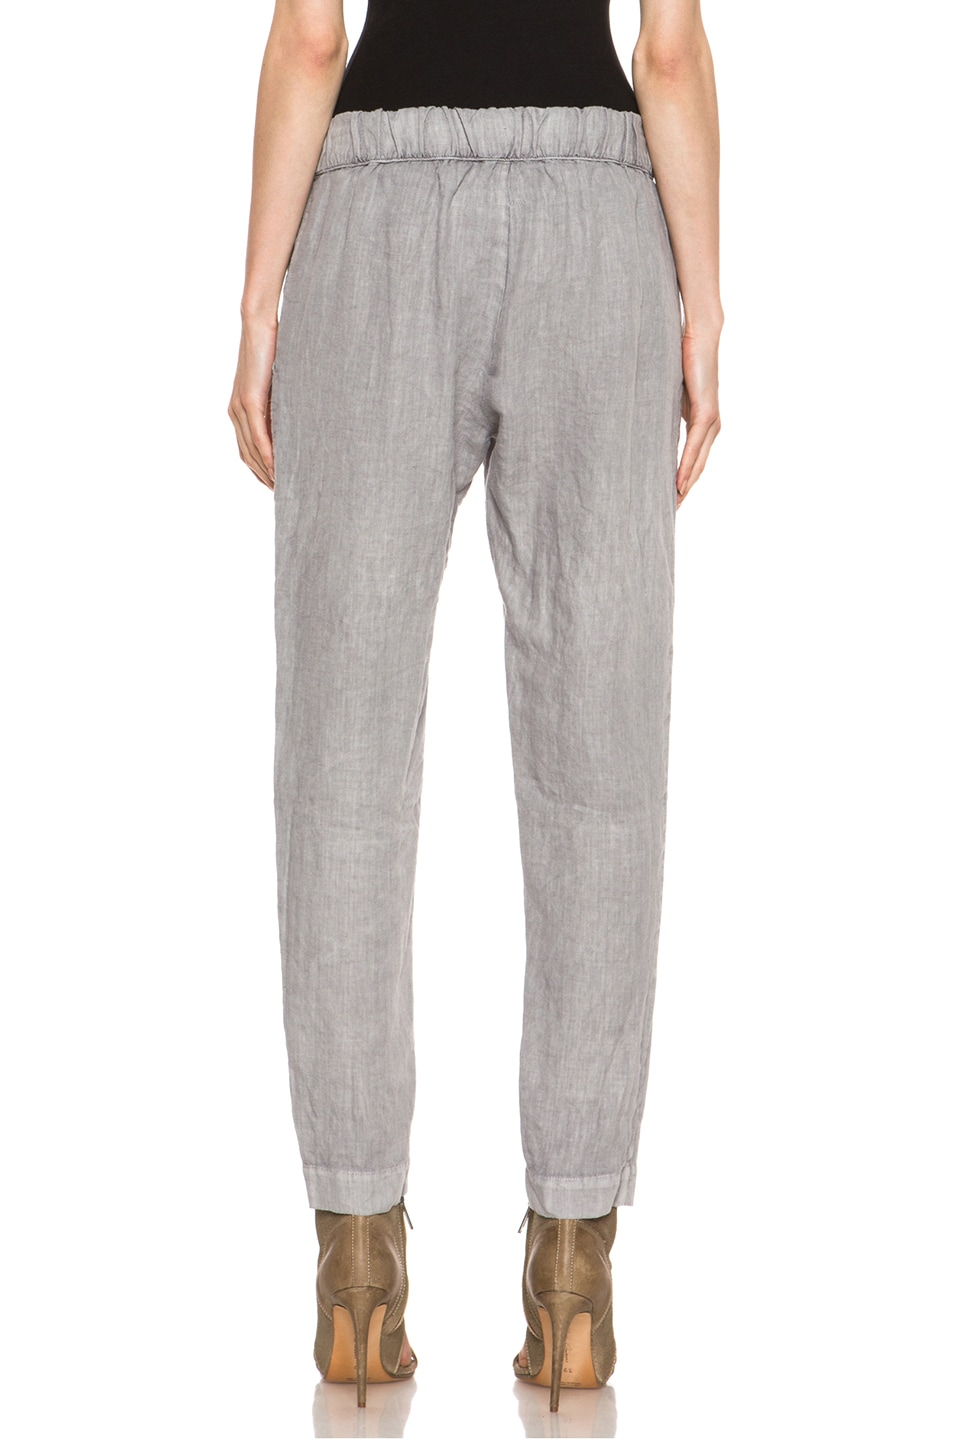 Image 4 of Enza Costa Linen Pant in Ashen